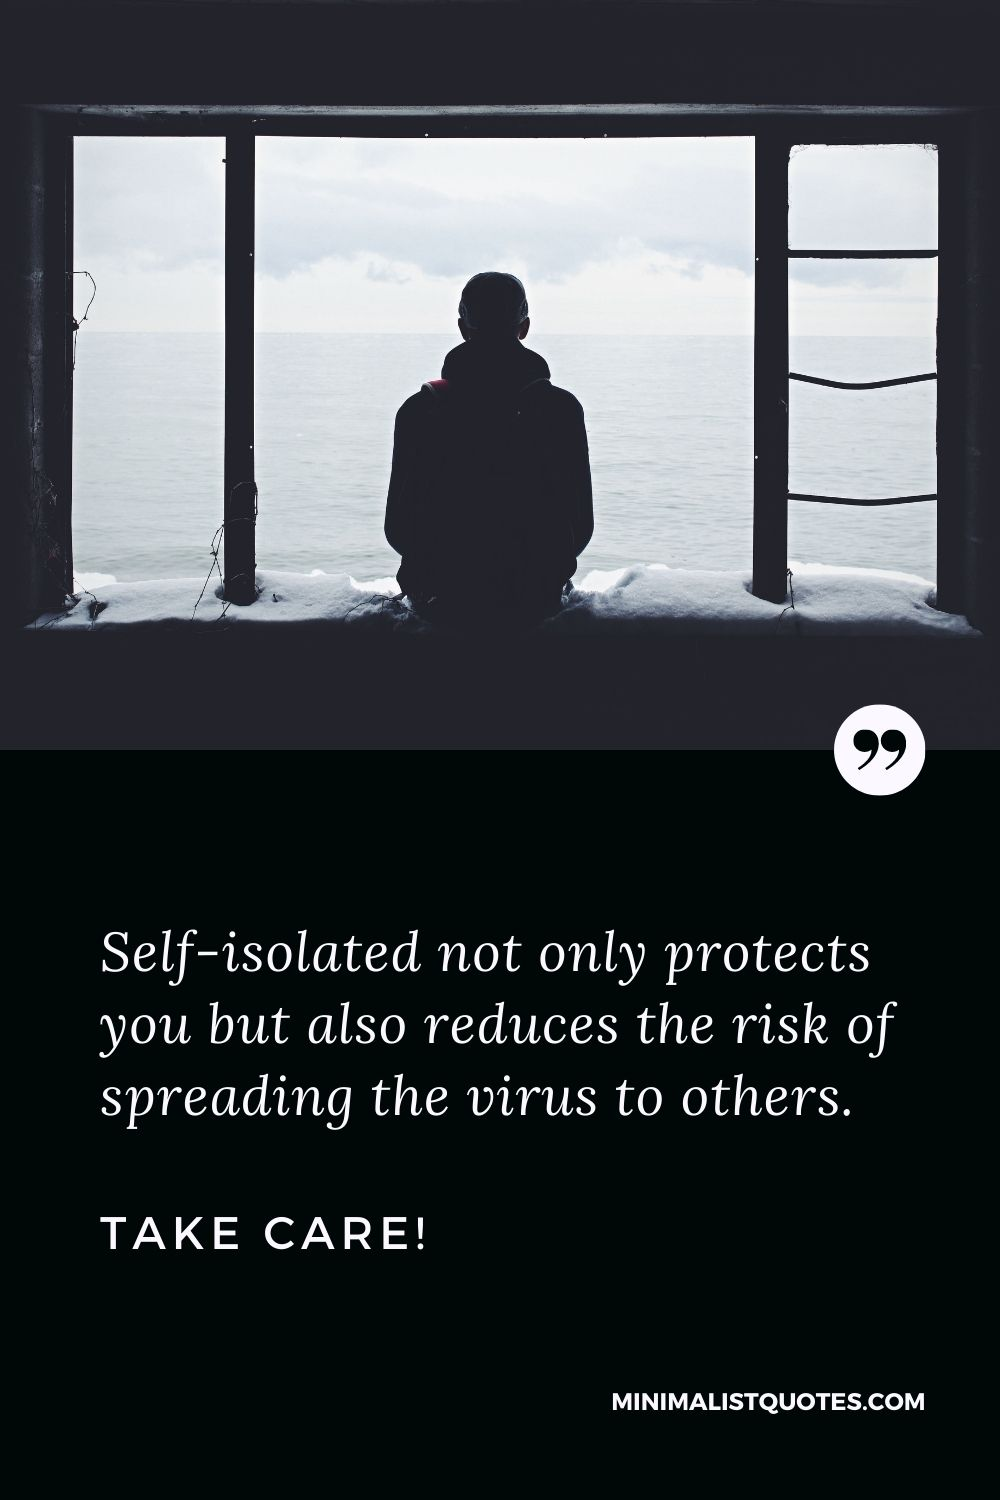 Quarantine Quotes, Wishes & Messages: Self-isolated not only protects you but also reduces the risk ofspreading the virus to others. Take Care!